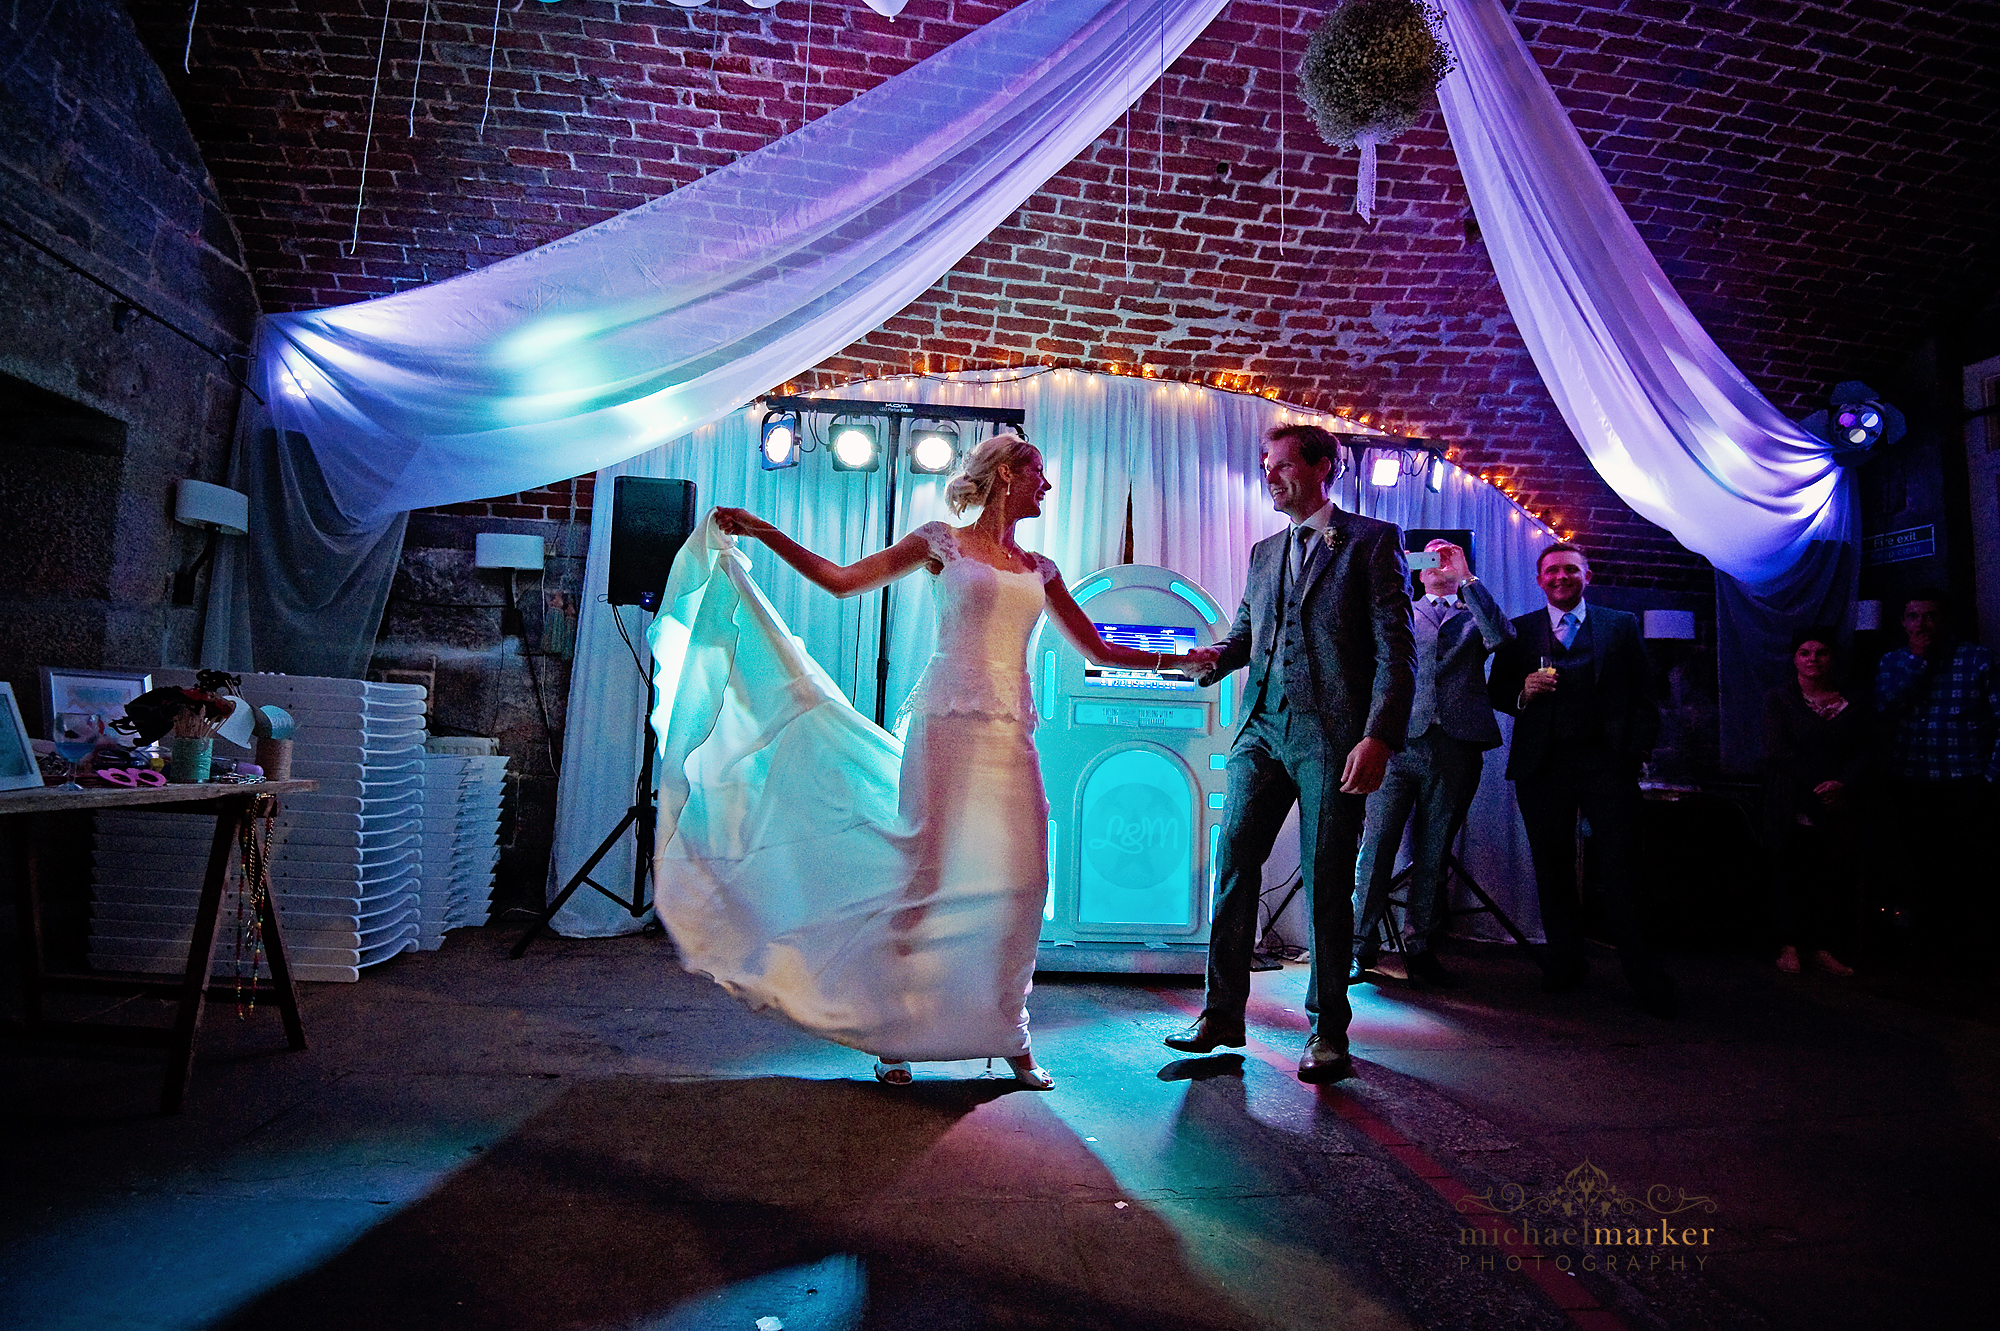 Bride and groom's first dance at Polhawn Fort wedding